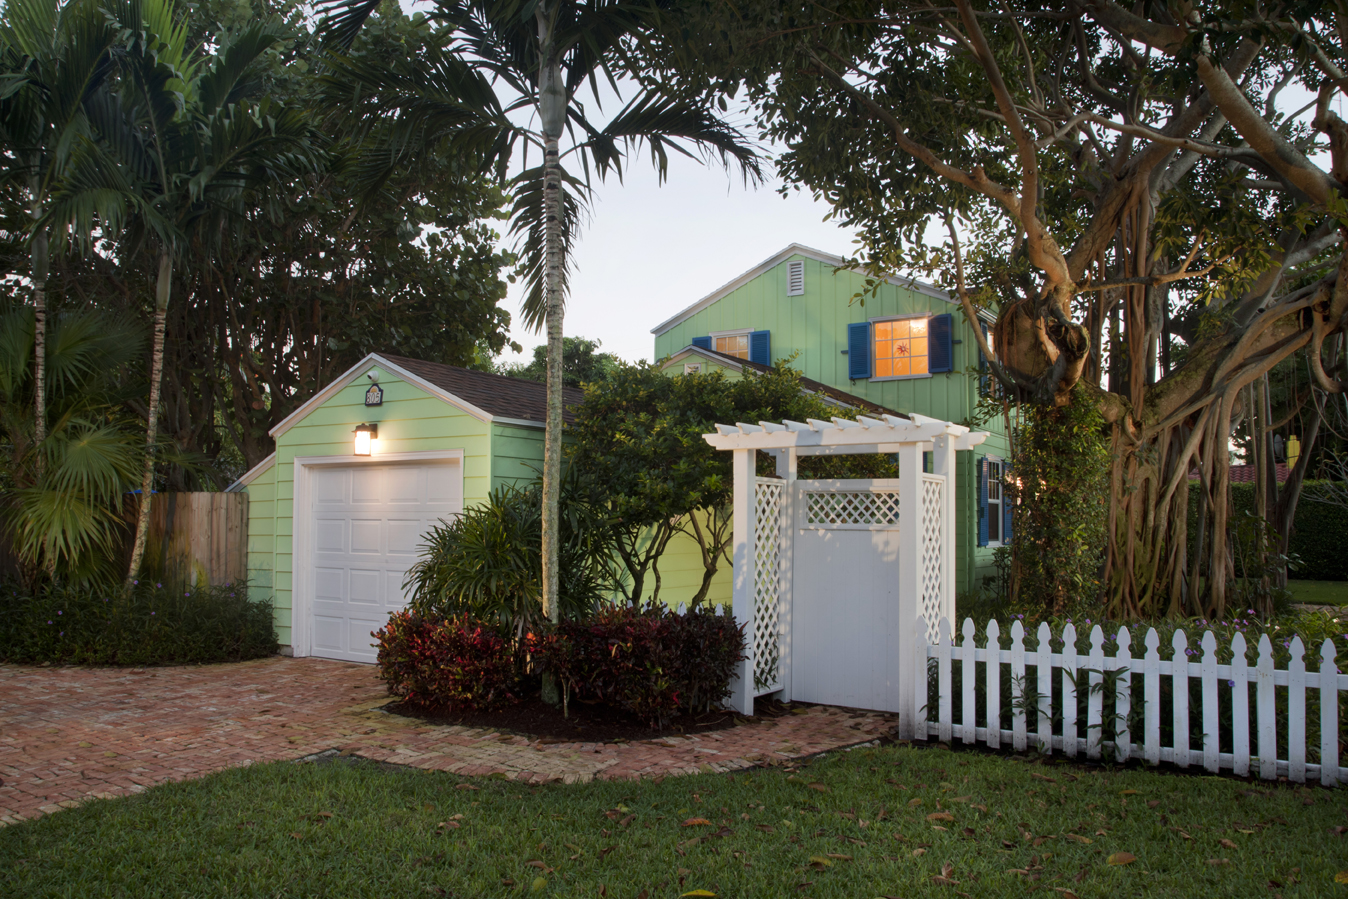 North side view of Delray Beach home